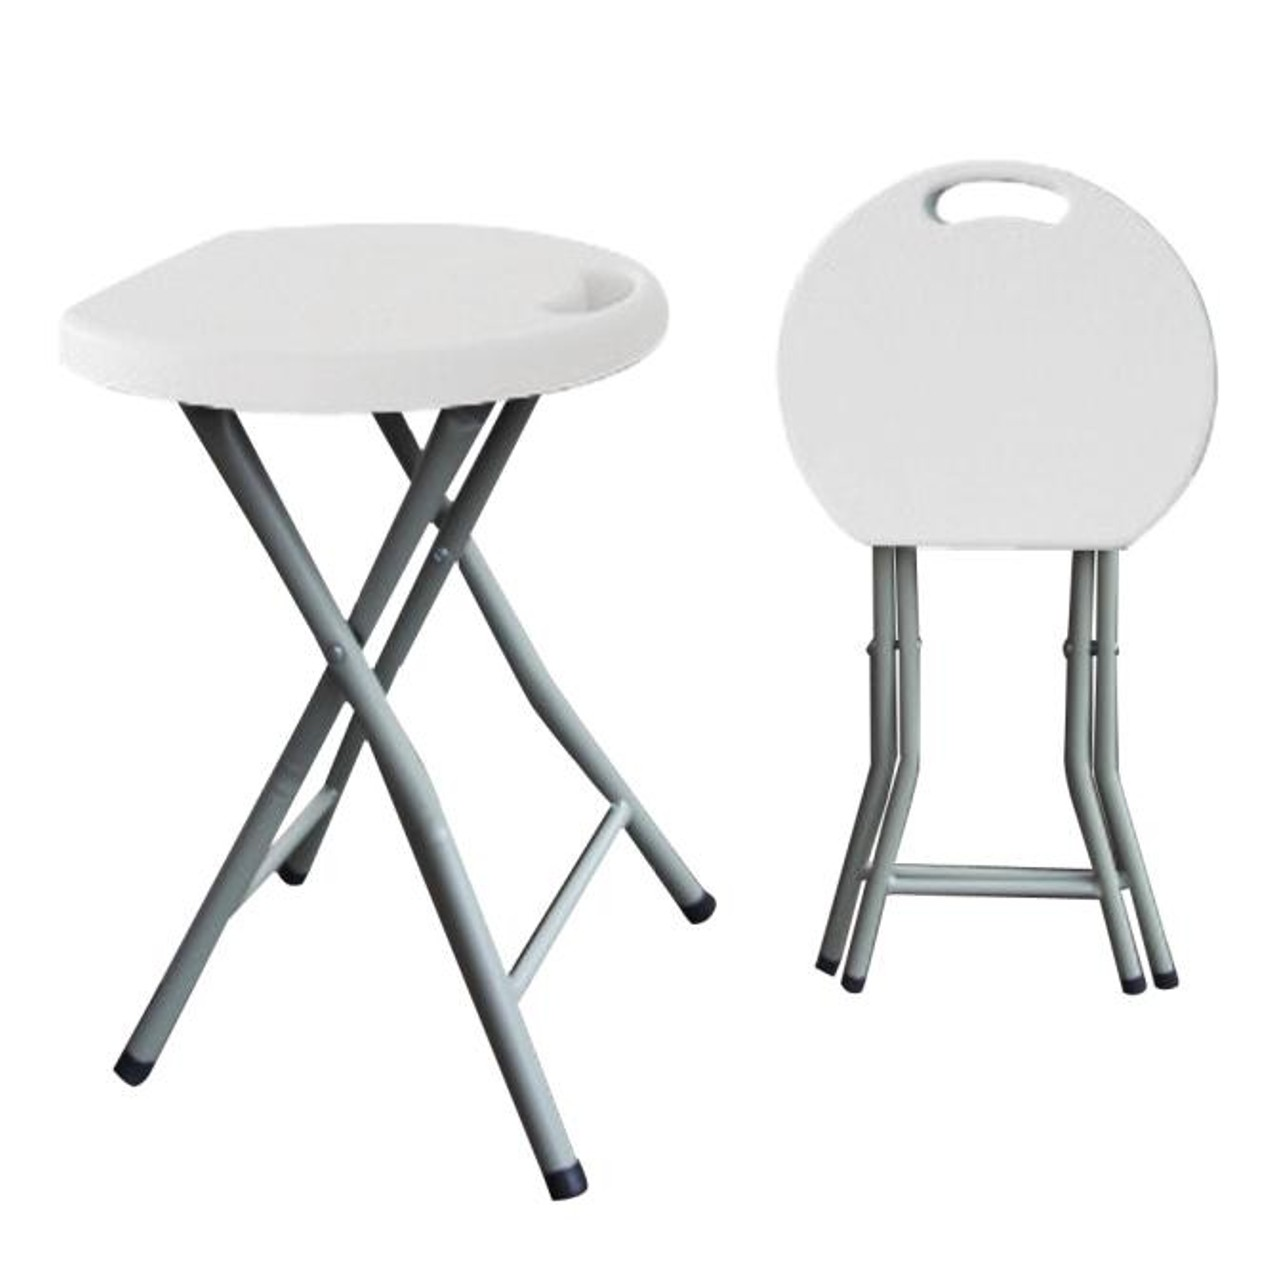 Enjoyable Heavy Duty 400Lb Capacity Light Weight Metal And Plastic Gmtry Best Dining Table And Chair Ideas Images Gmtryco